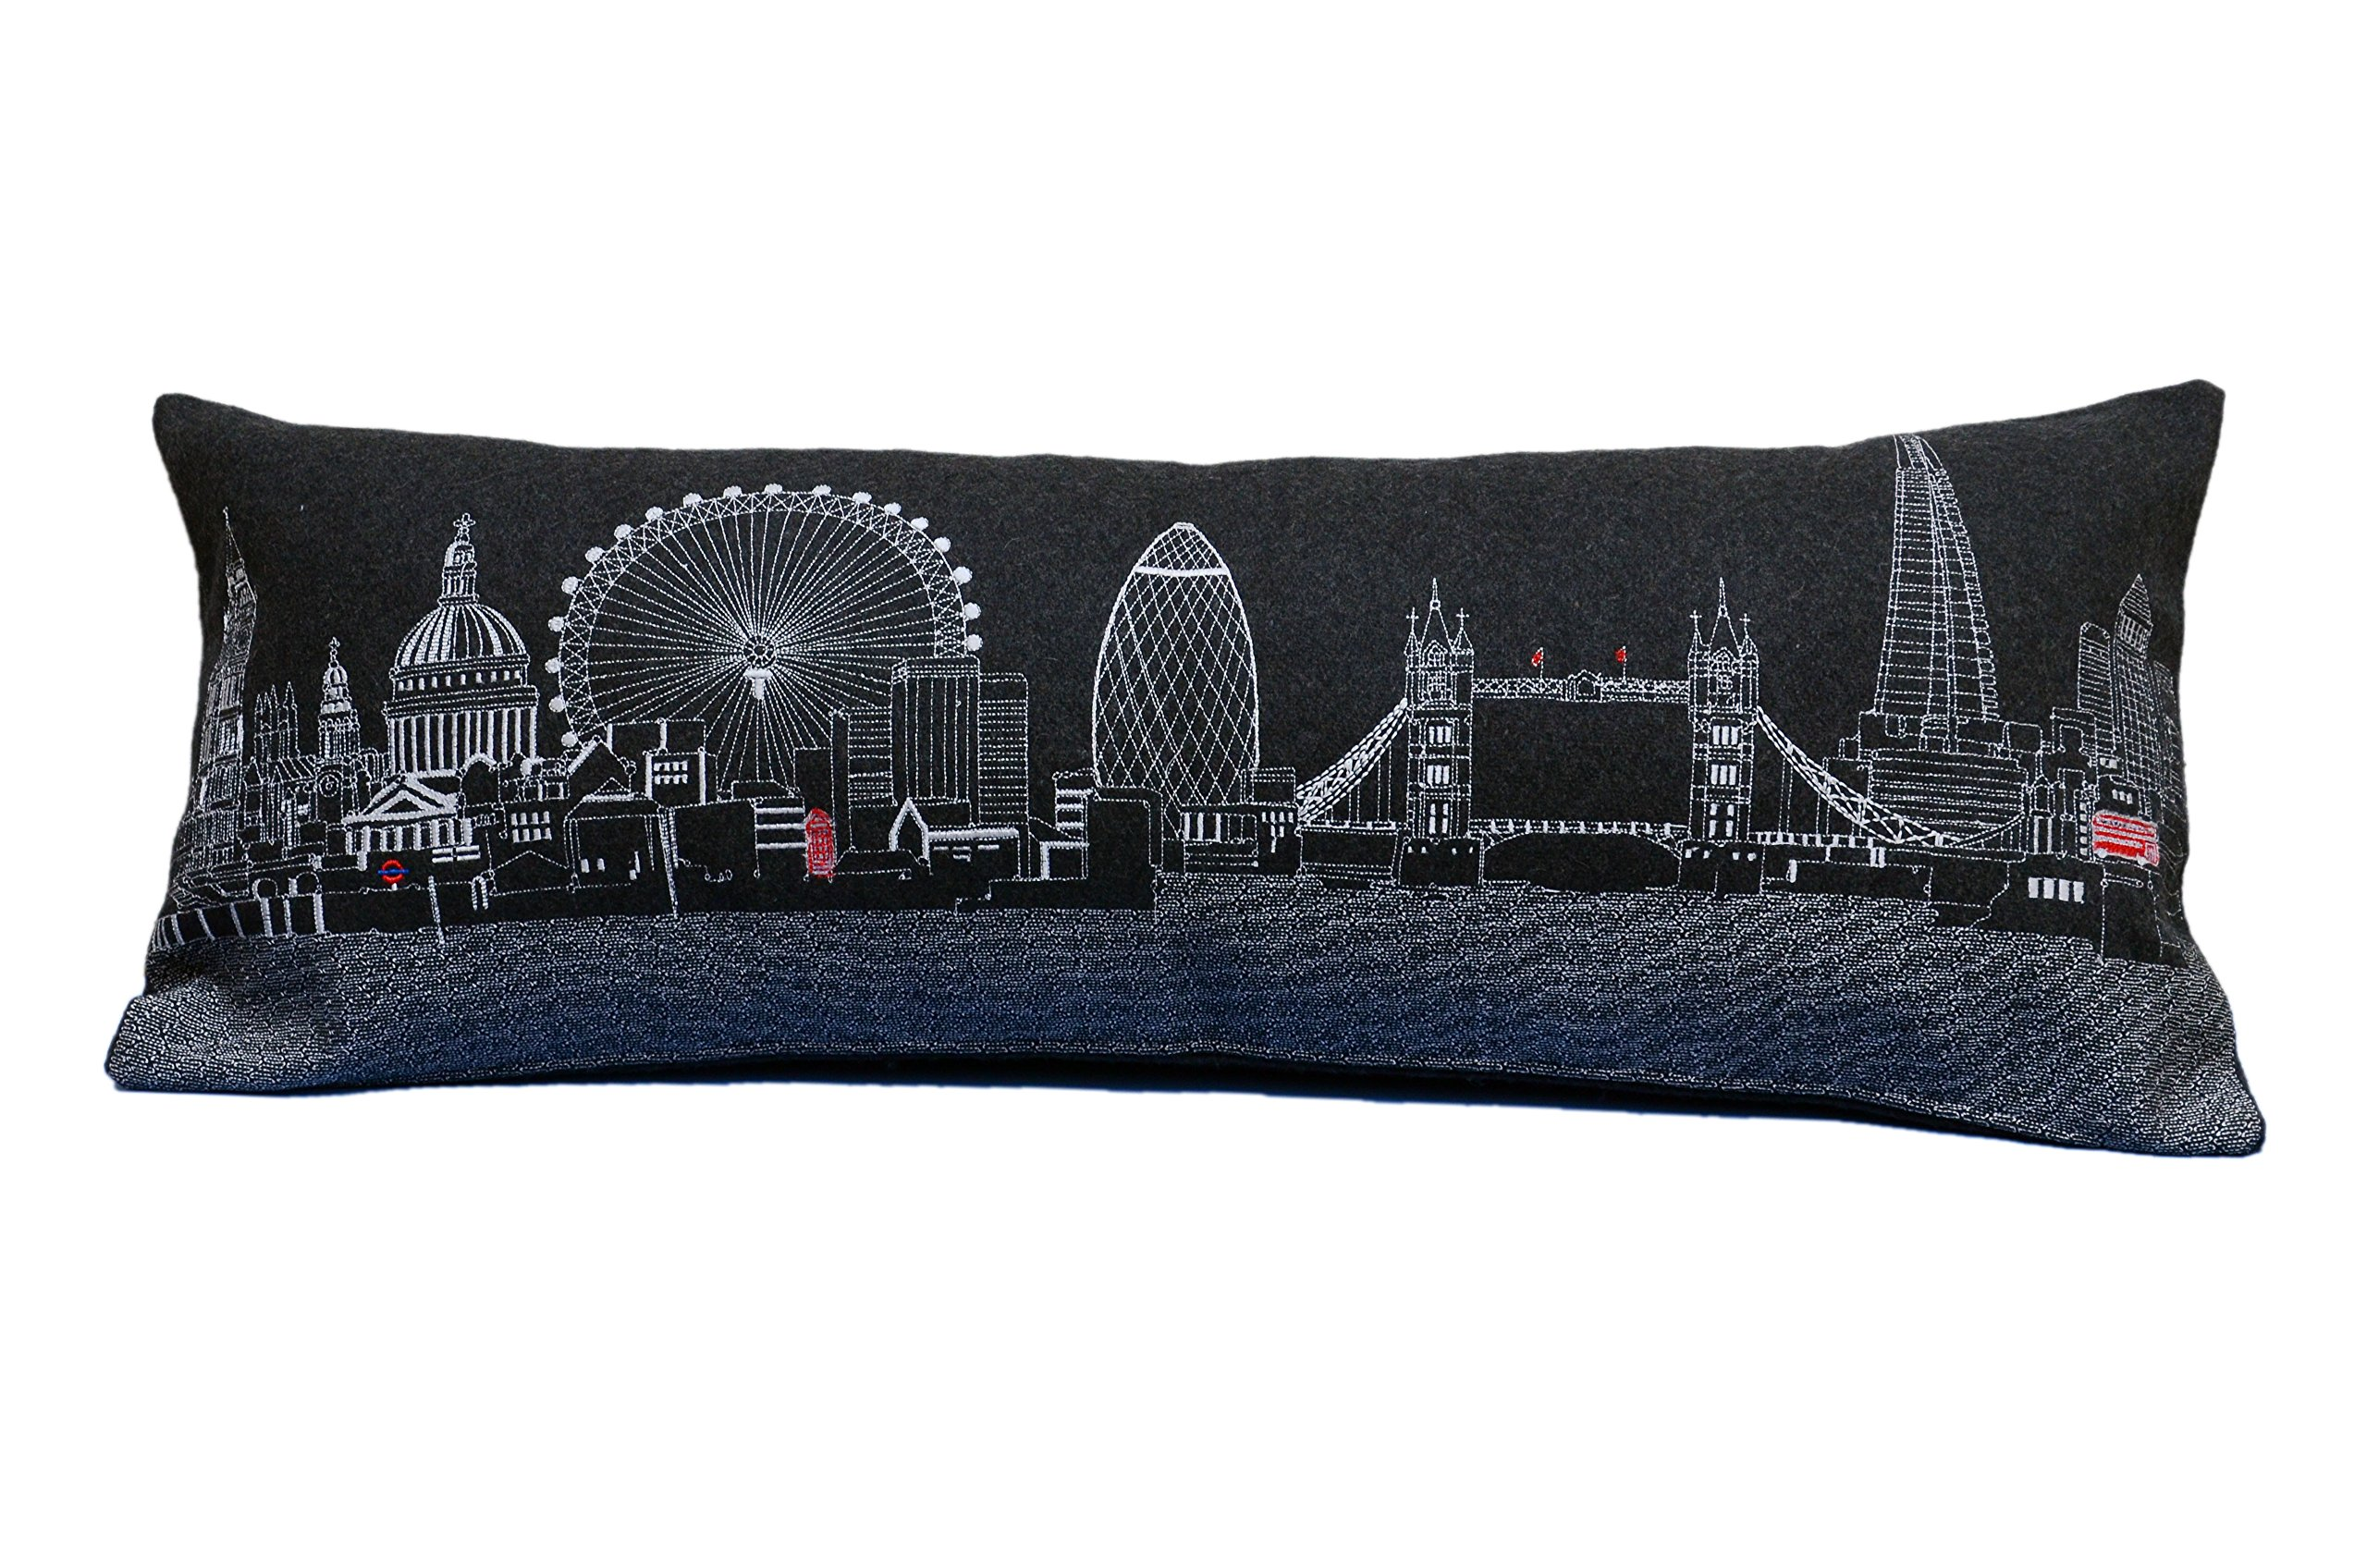 Beyond Cushions Polyester Throw Pillows Beyond Cushions London England Night Skyline Queen Size Embroidered Pillow 35 X 14 X 5 Inches Black